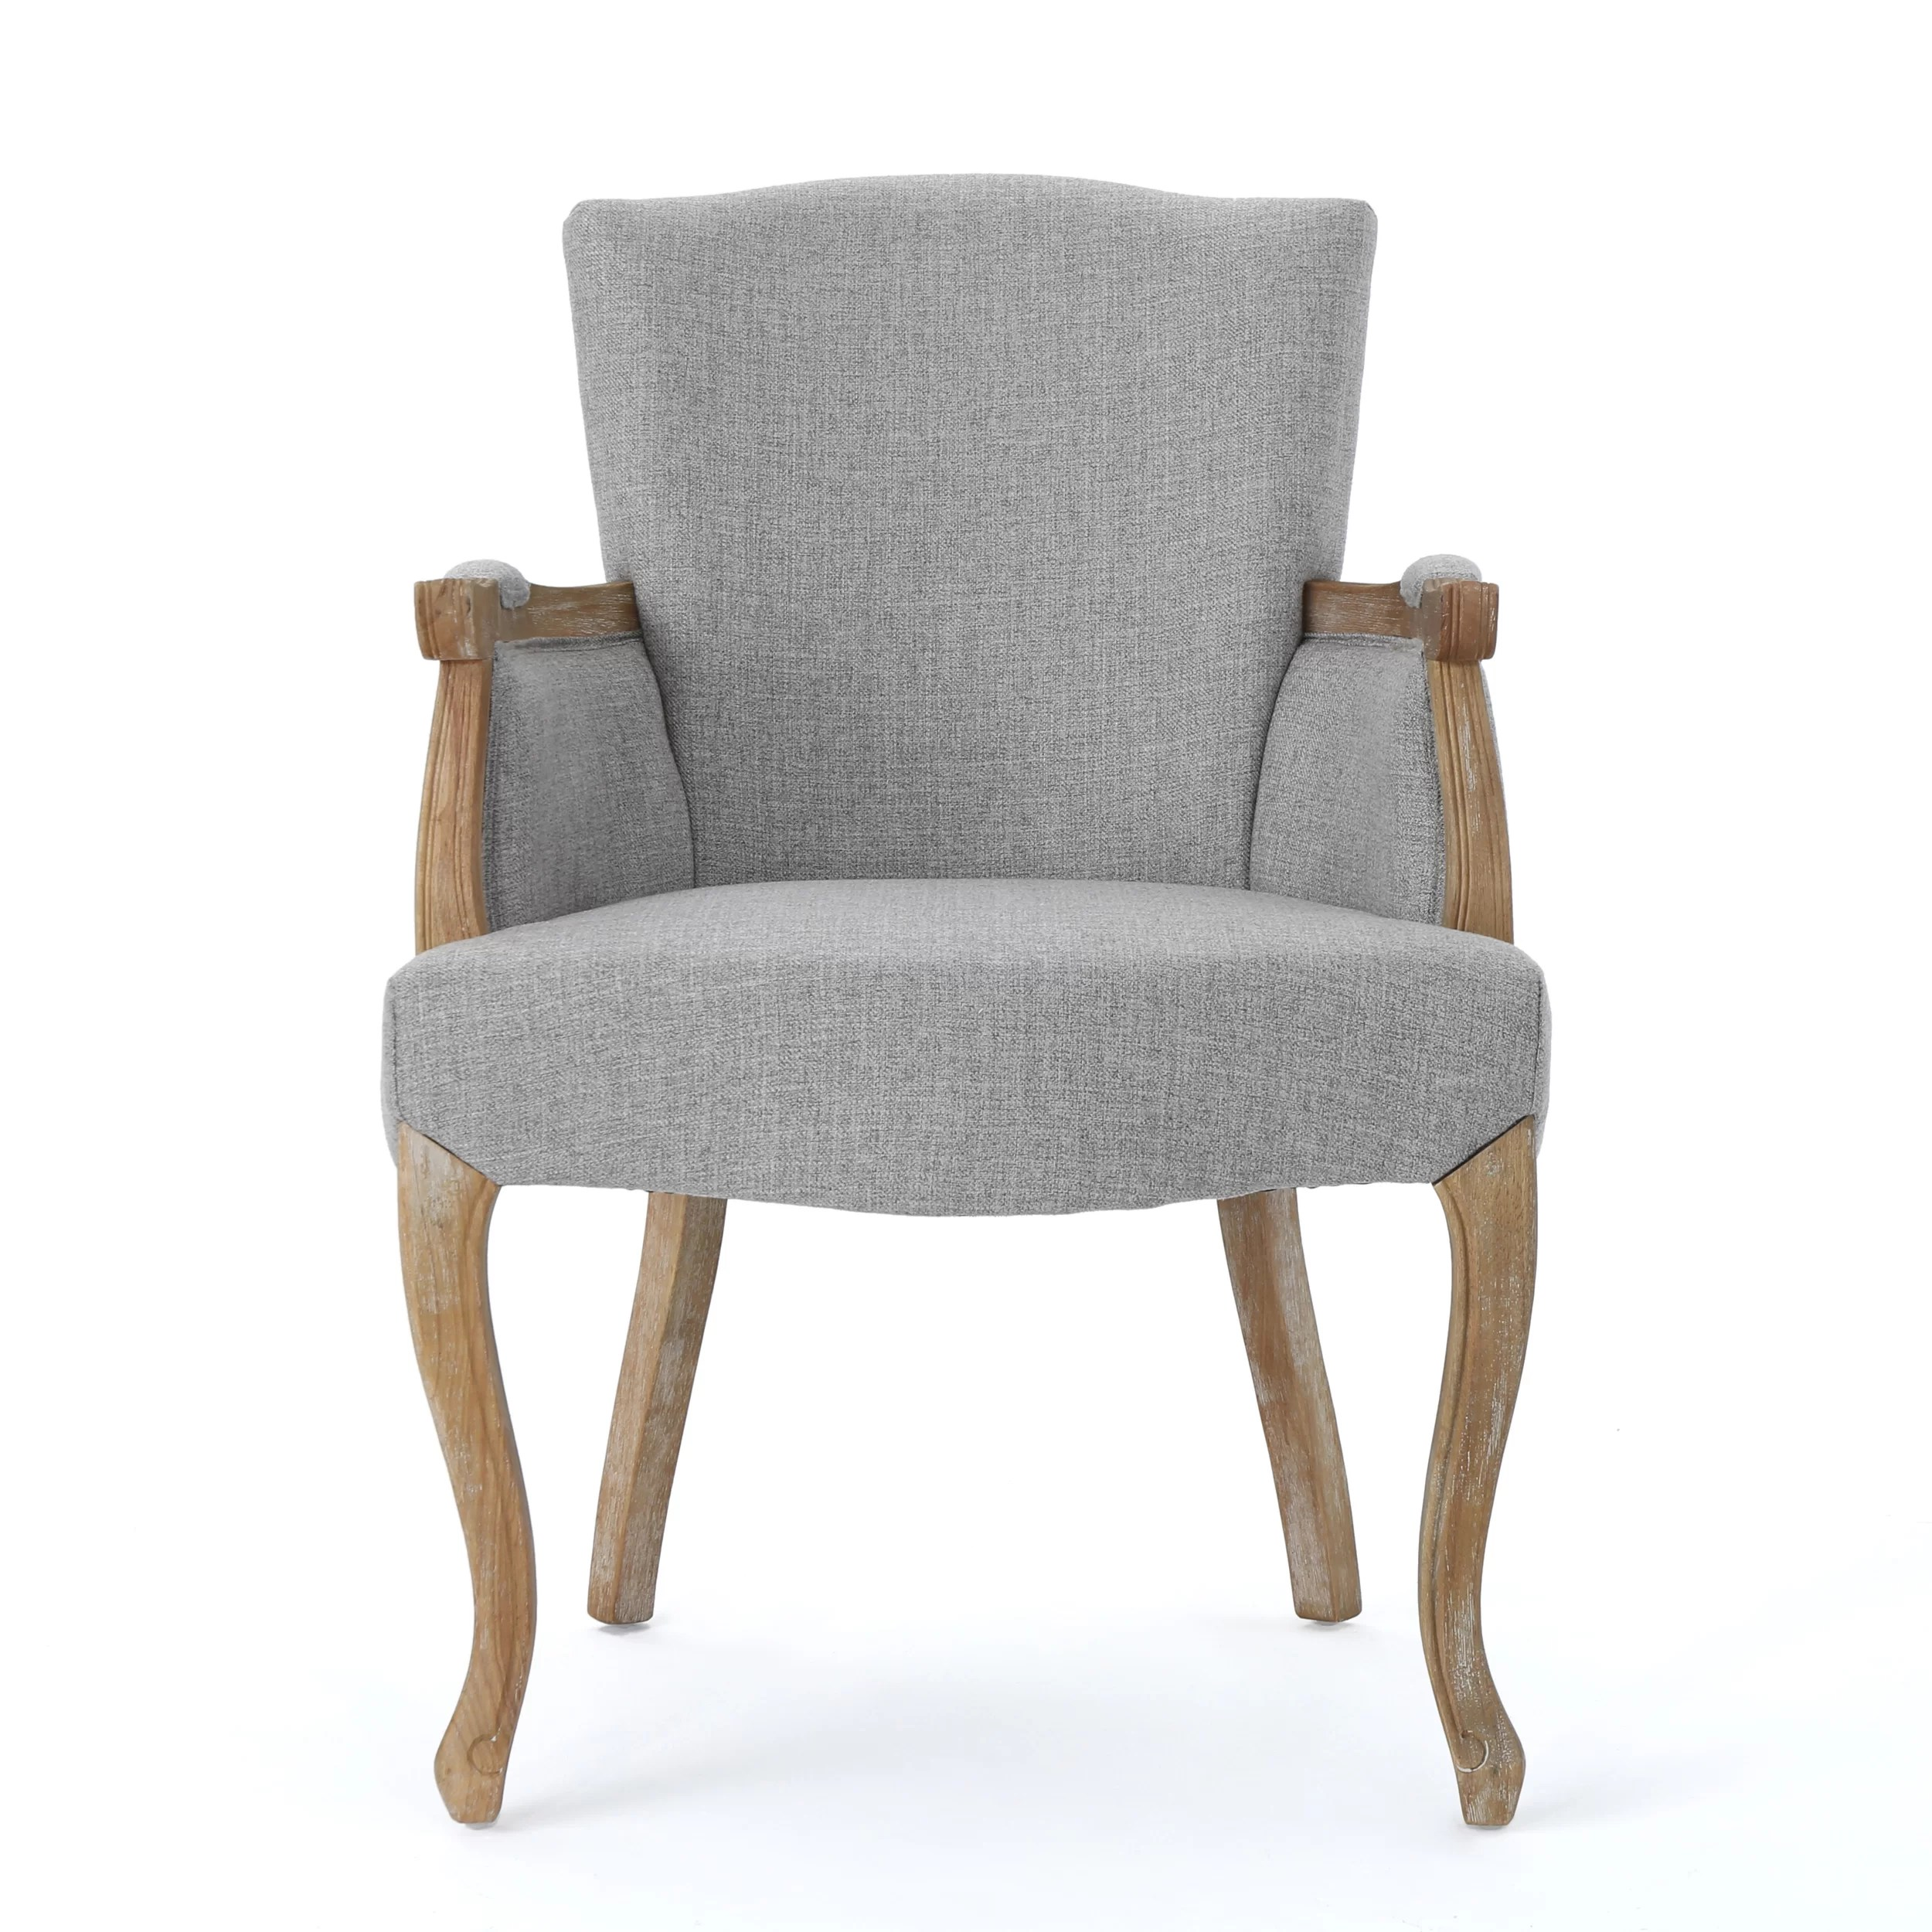 Upholstered Arm Chairs Prejean Upholstered Arm Chair